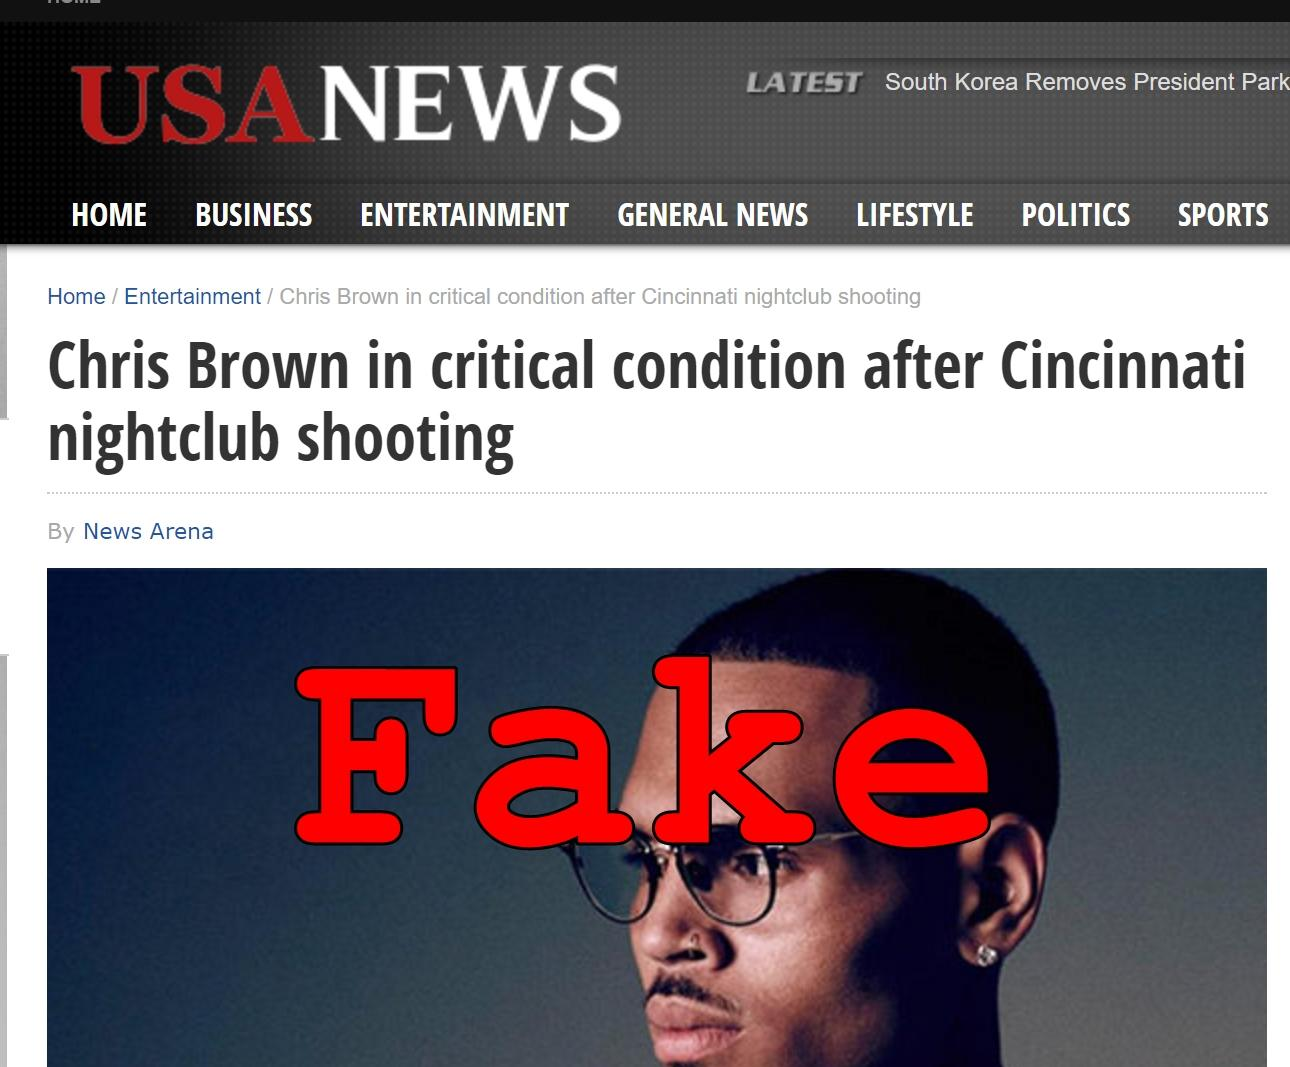 Fake News: Chris Brown NOT In Critical Condition After Cincinnati Nightclub Shooting